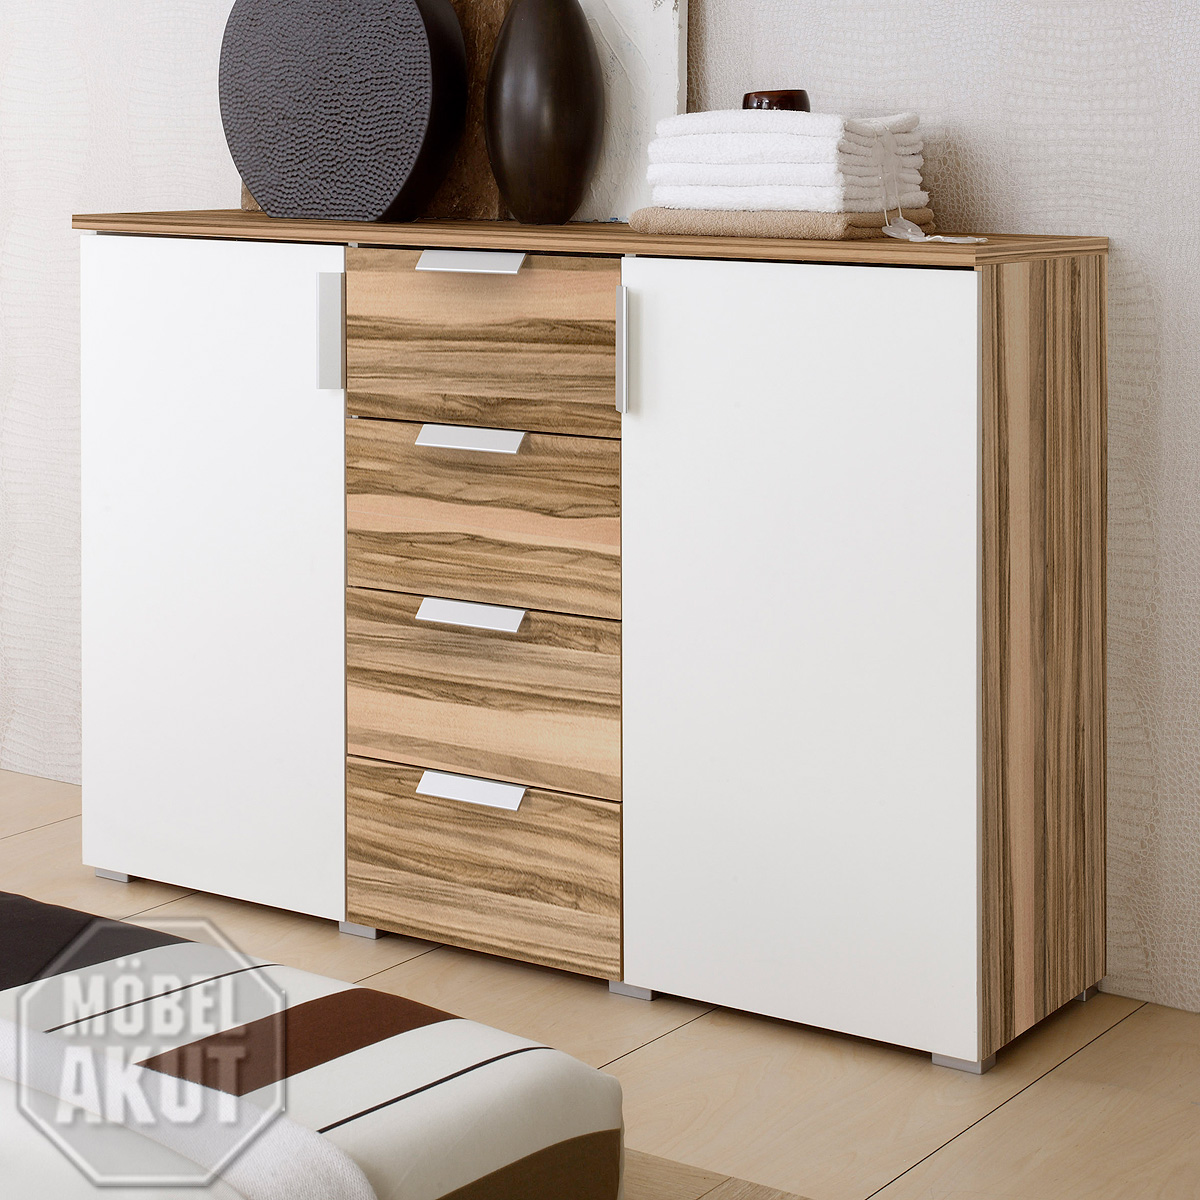 Baltimore Walnuss Kommode Kommode Eco Sideboard Weiß Baltimore Walnuss Neu